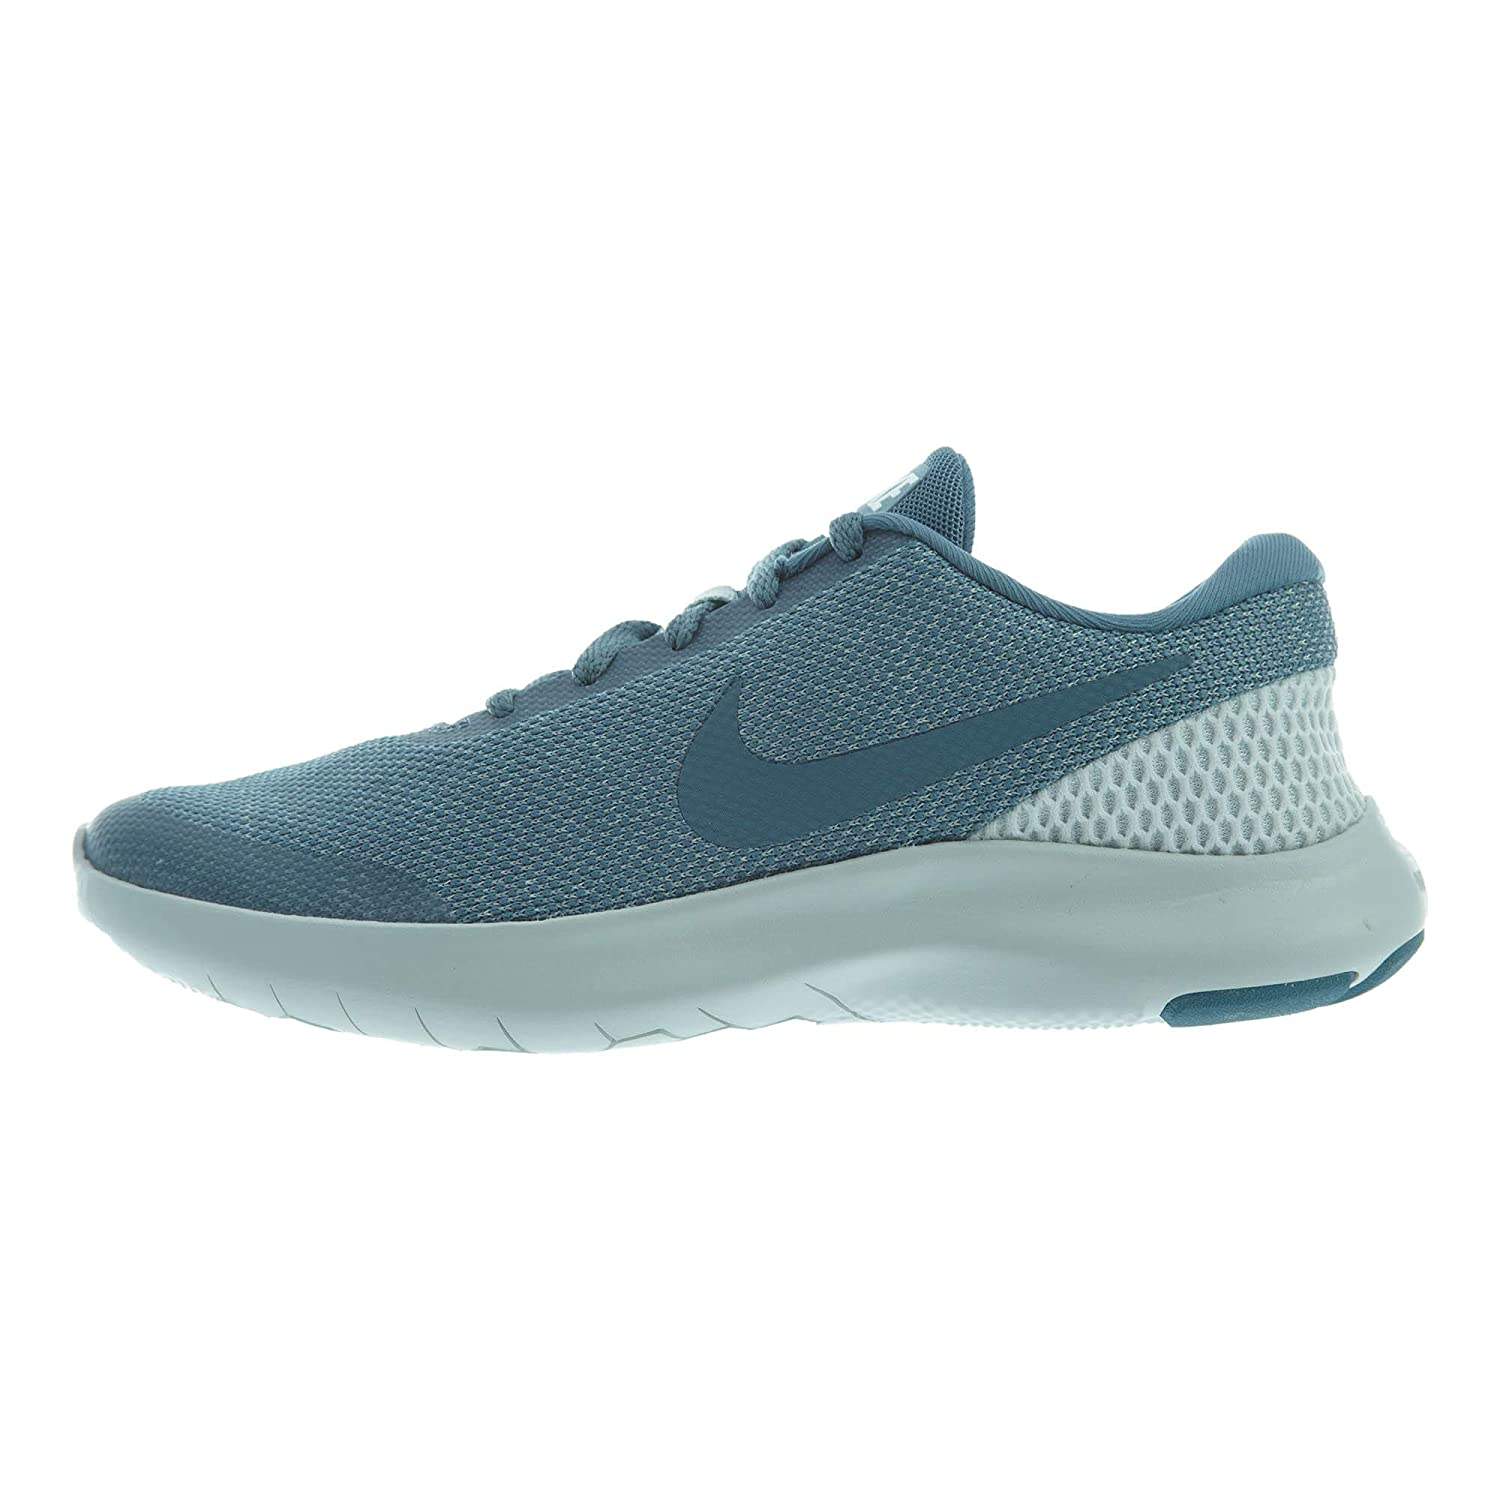 Multicoloured (Celestial Teal Celestial Teal 404) Nike Women's Flex Experience RN 6 Running shoes White